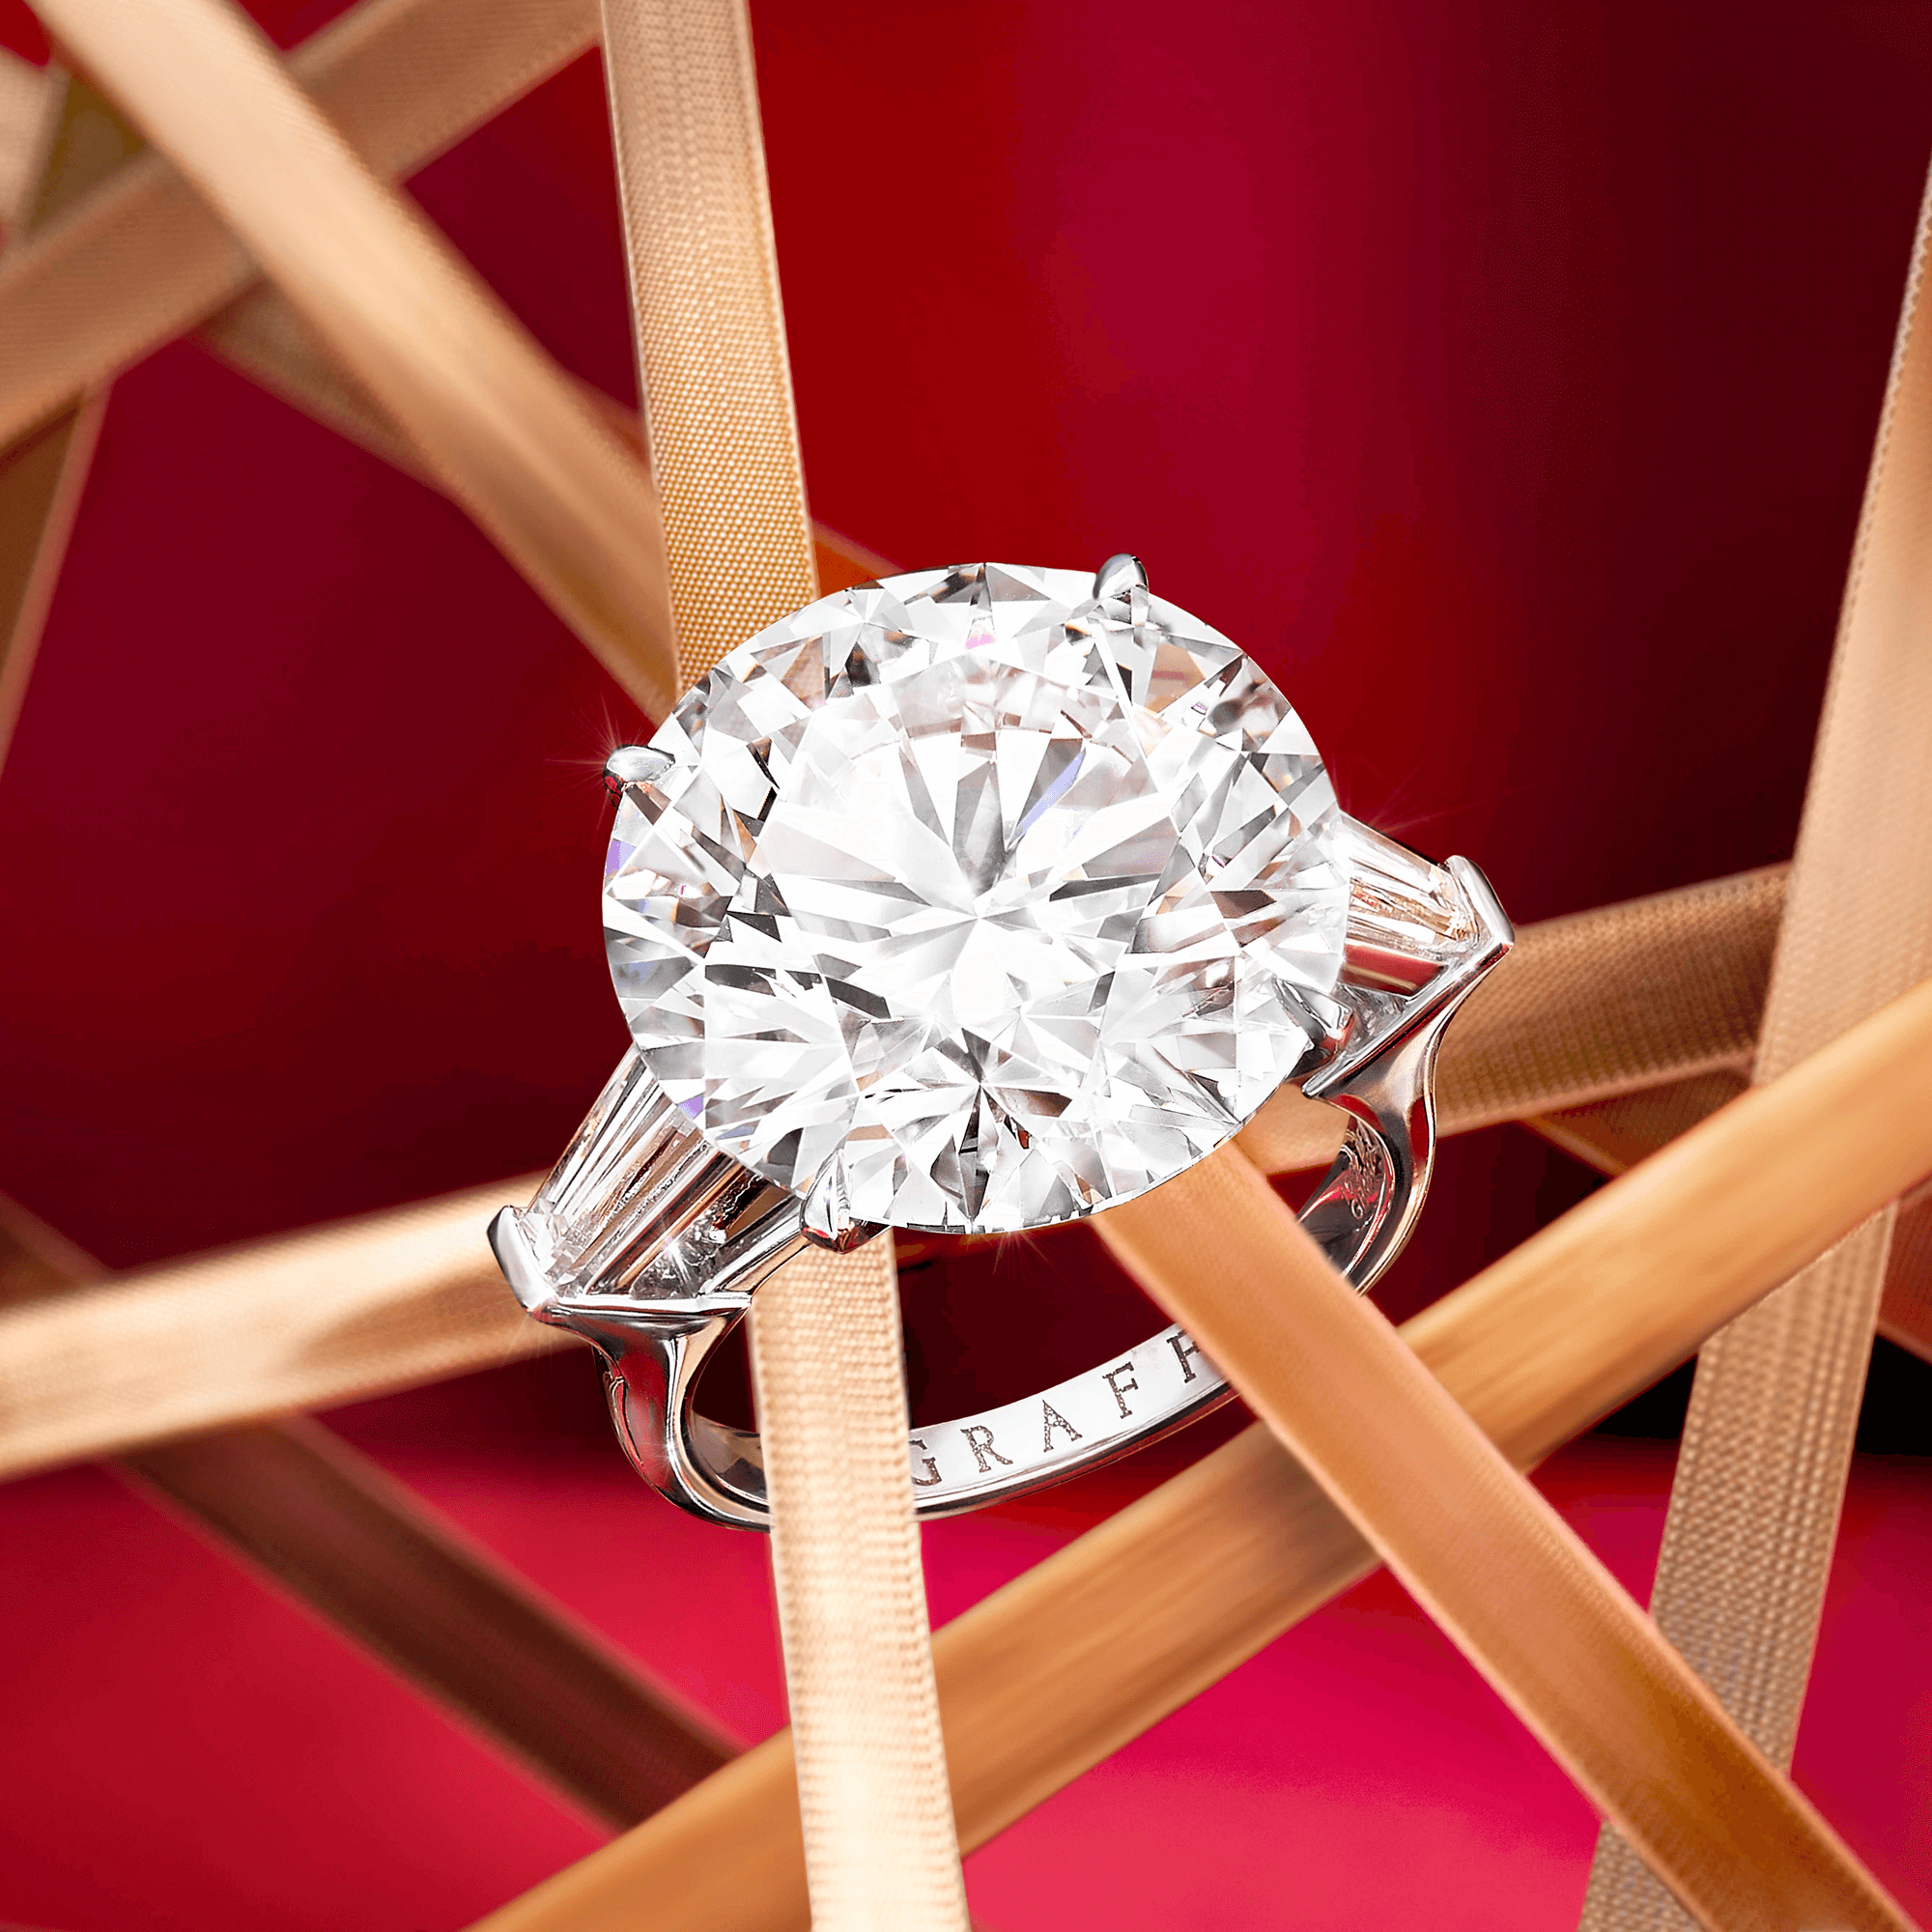 A Graff Diamond Ring featuring a round diamond with tapered baguette side stones on a red background with gold ribbons